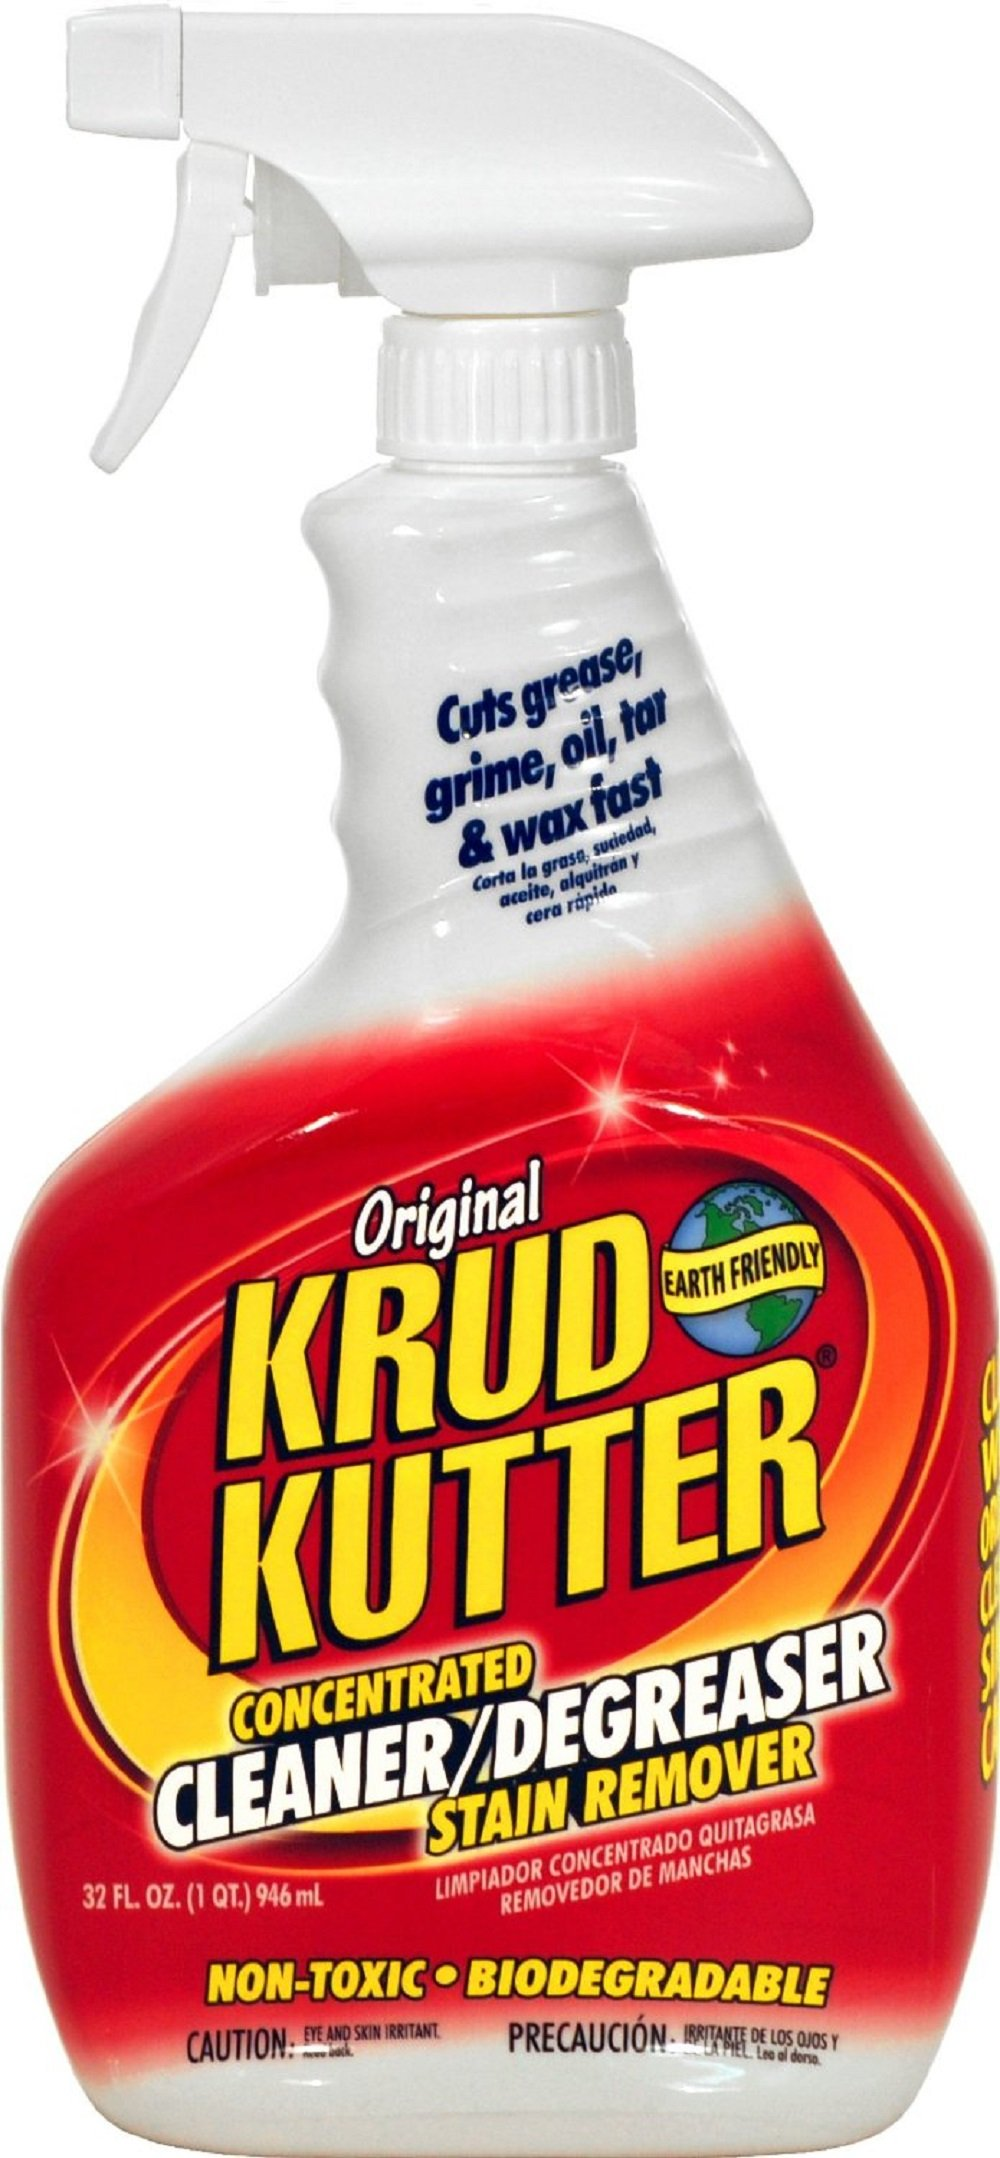 KRUD KUTTER KK32 Original Concentrated Cleaner/Degreaser, 32-Ounce by Krud Kutter